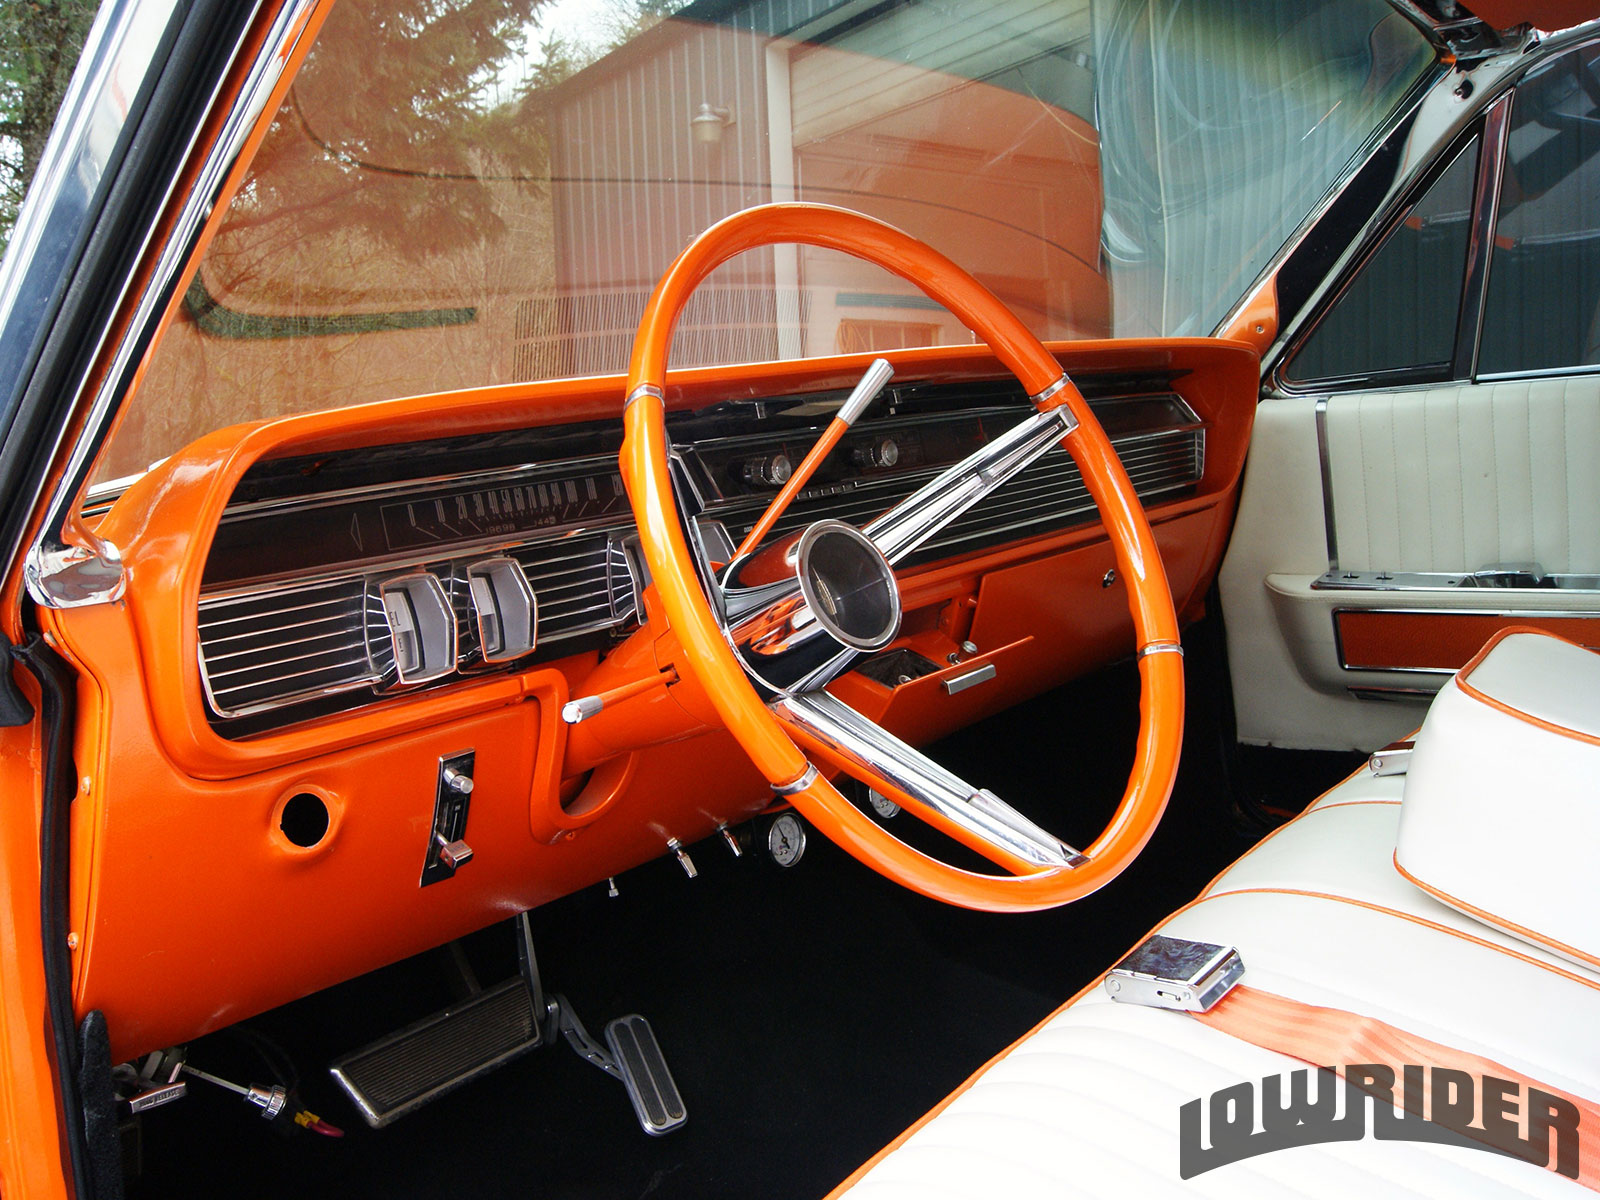 Lincoln Continental Painted Dashboard And Steering Wheel on Lincoln Lowrider